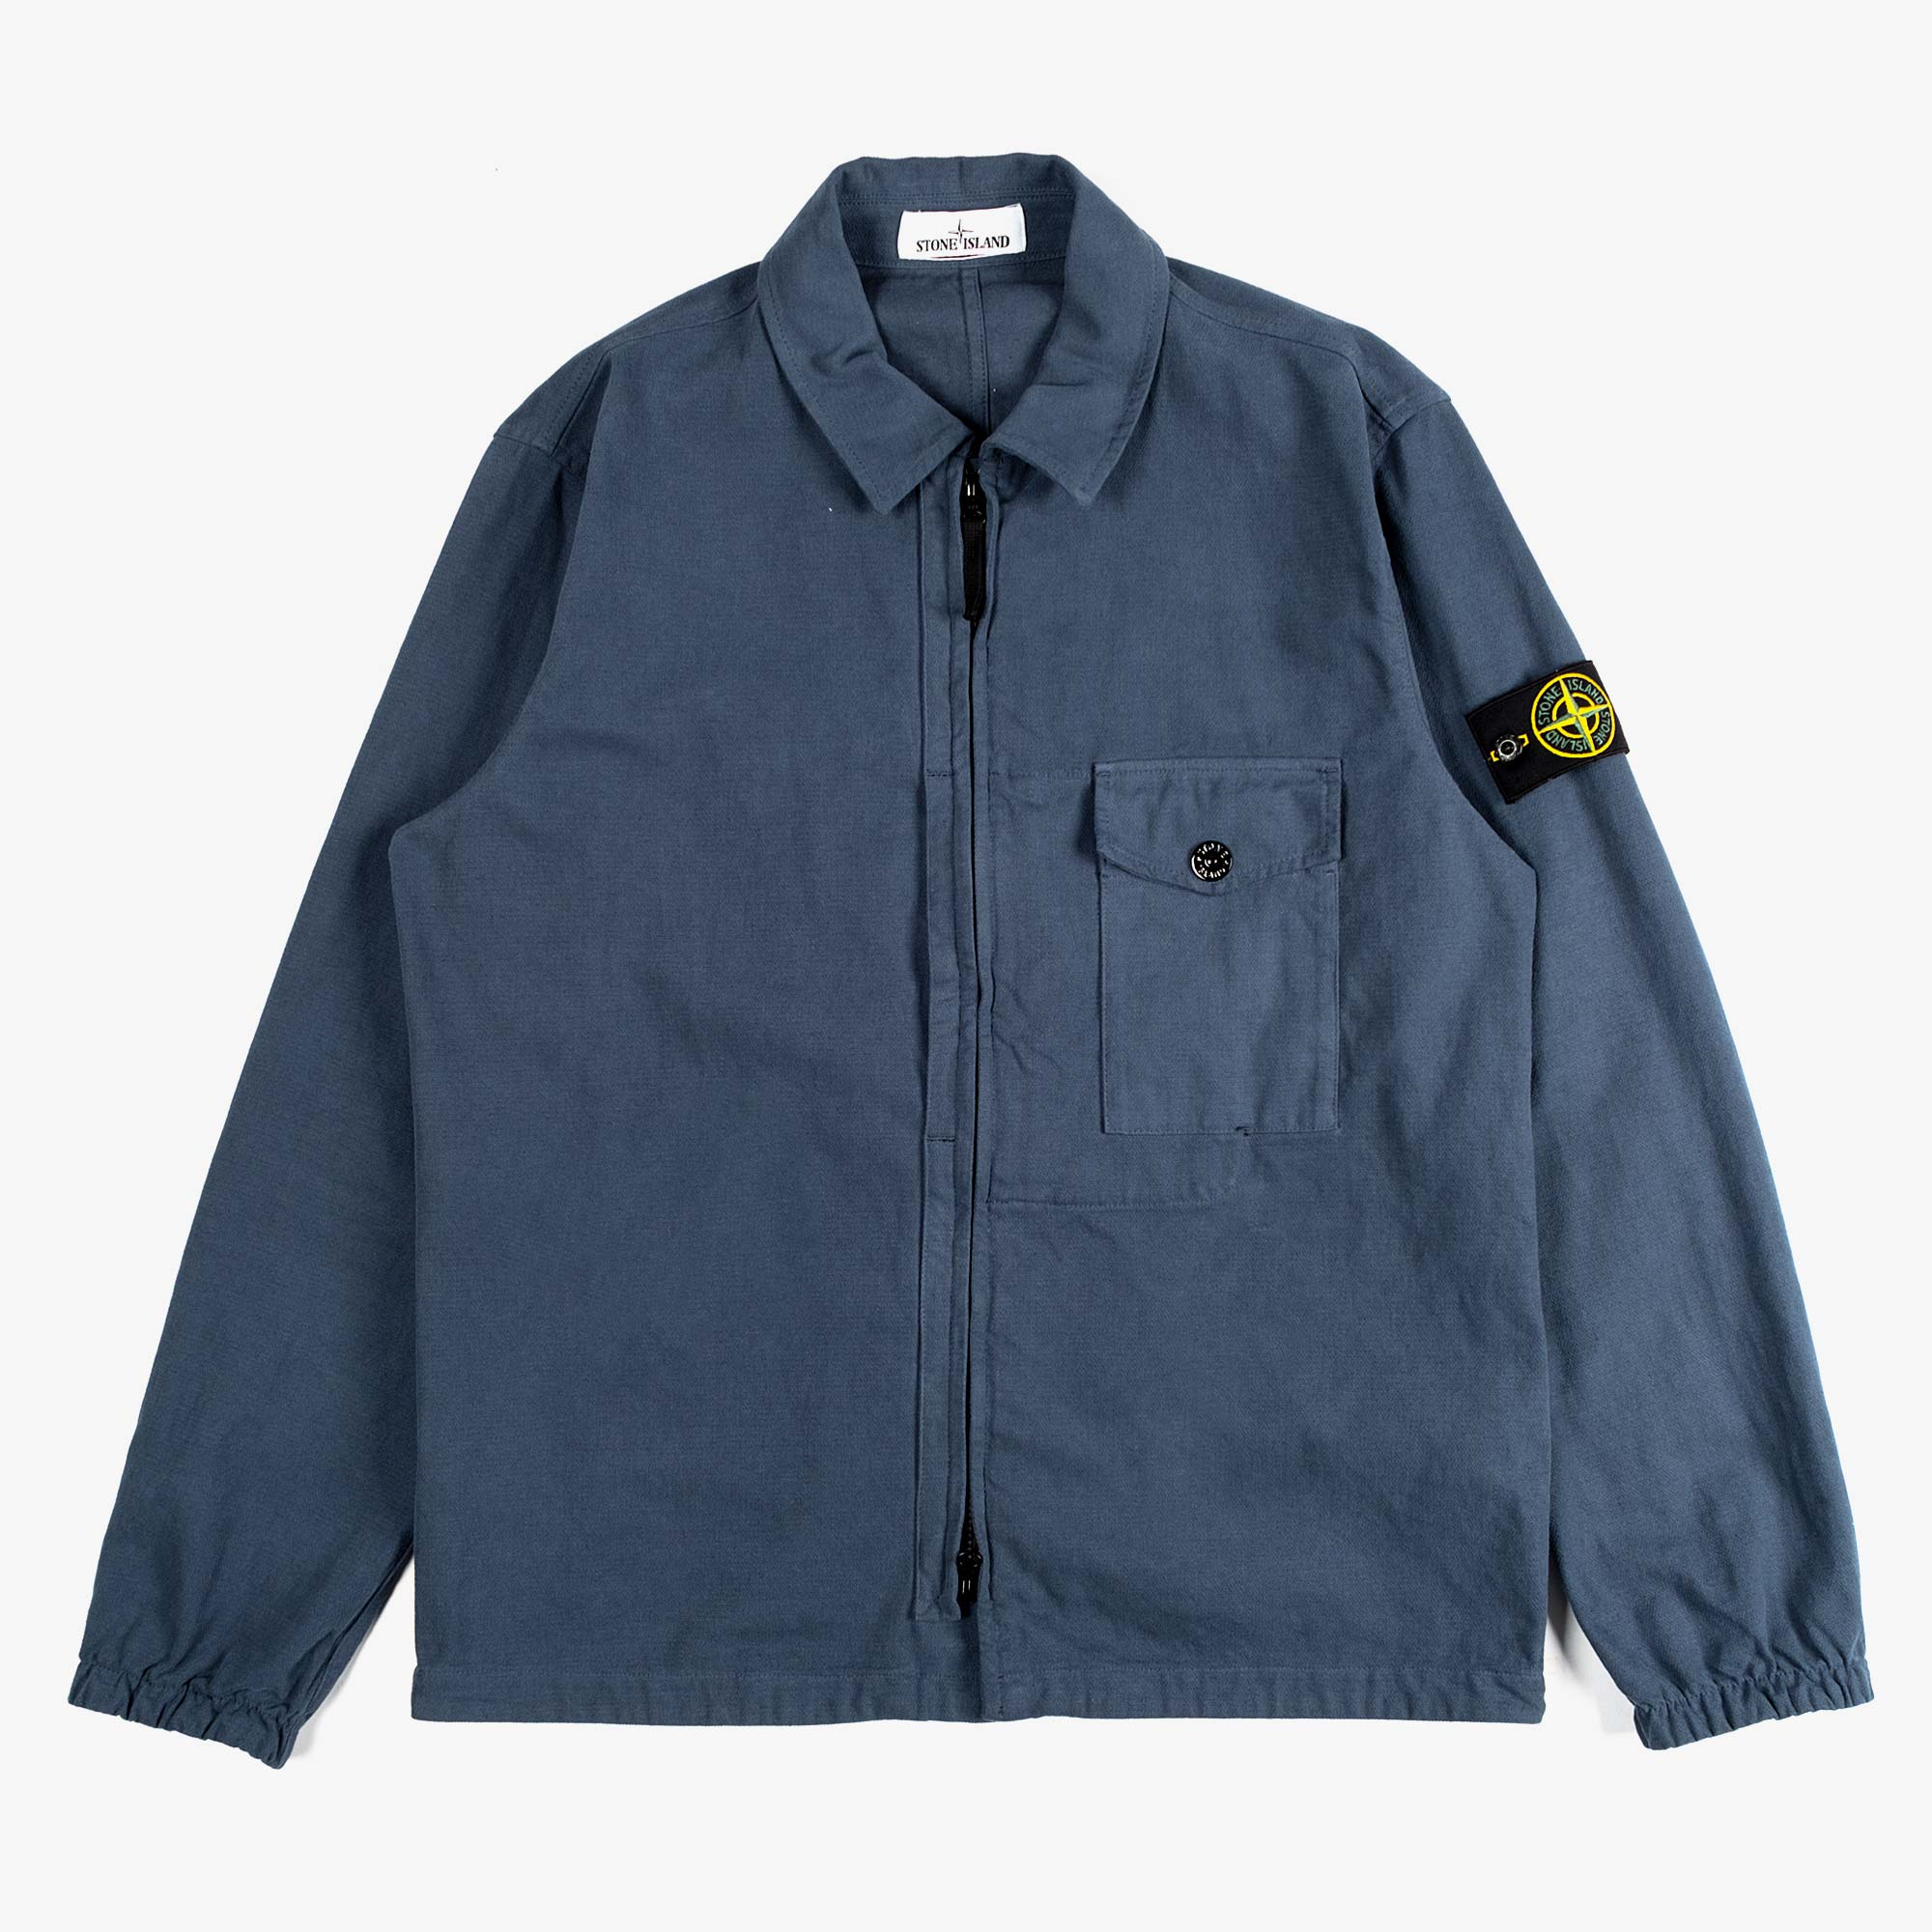 Stone Island Textured Brushed Recycled Cotton Overshirt 10704 - Cobalt Blue 1